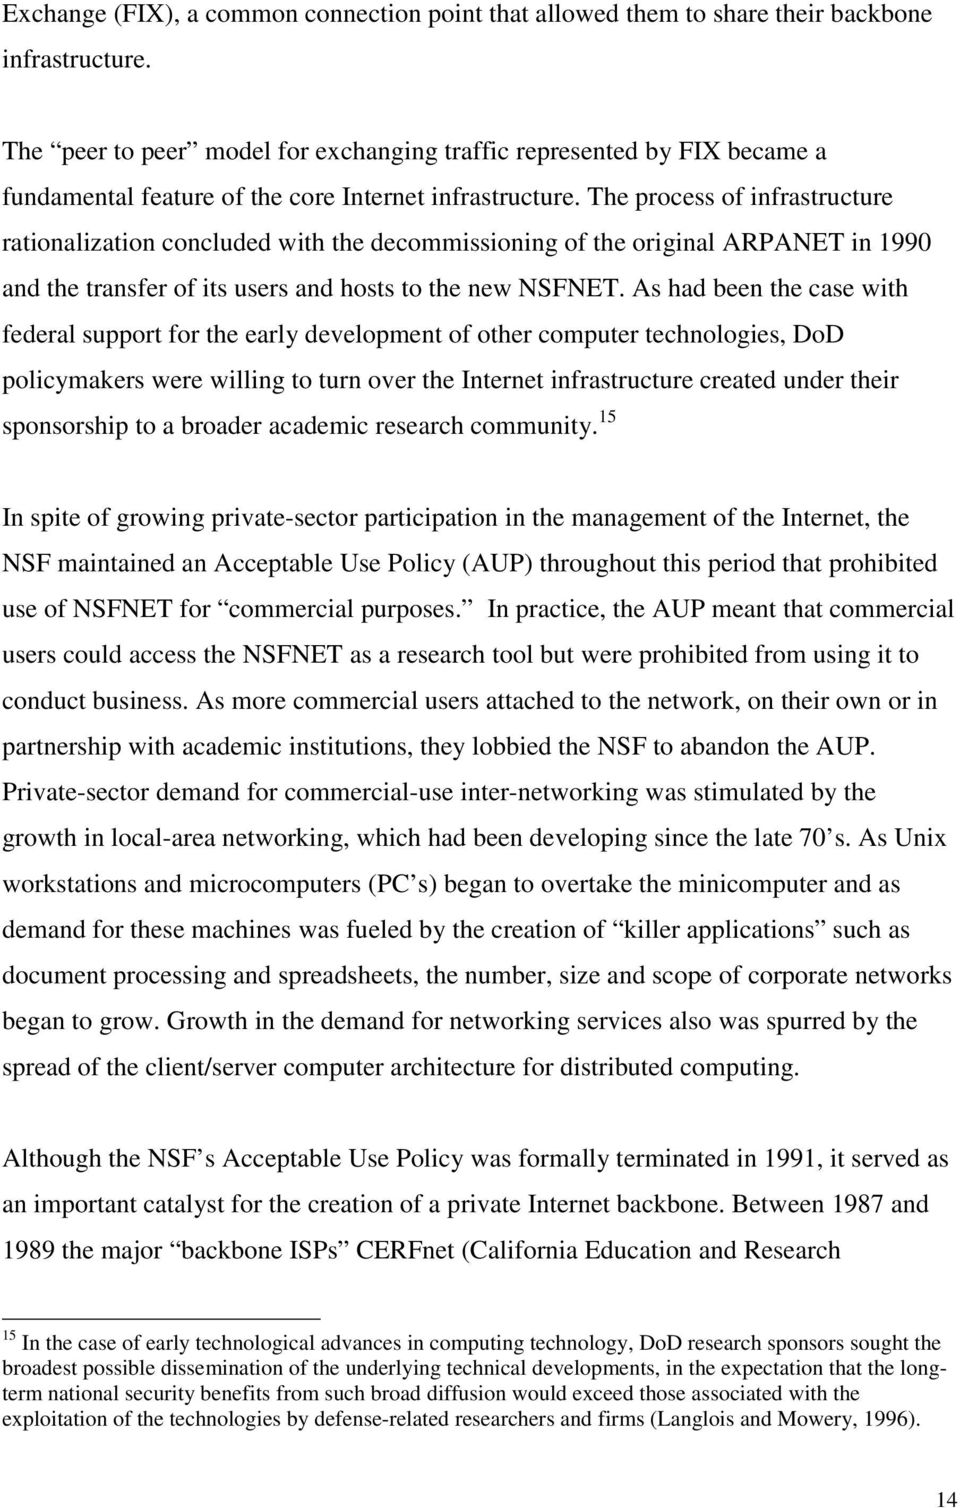 The process of infrastructure rationalization concluded with the decommissioning of the original ARPANET in 1990 and the transfer of its users and hosts to the new NSFNET.